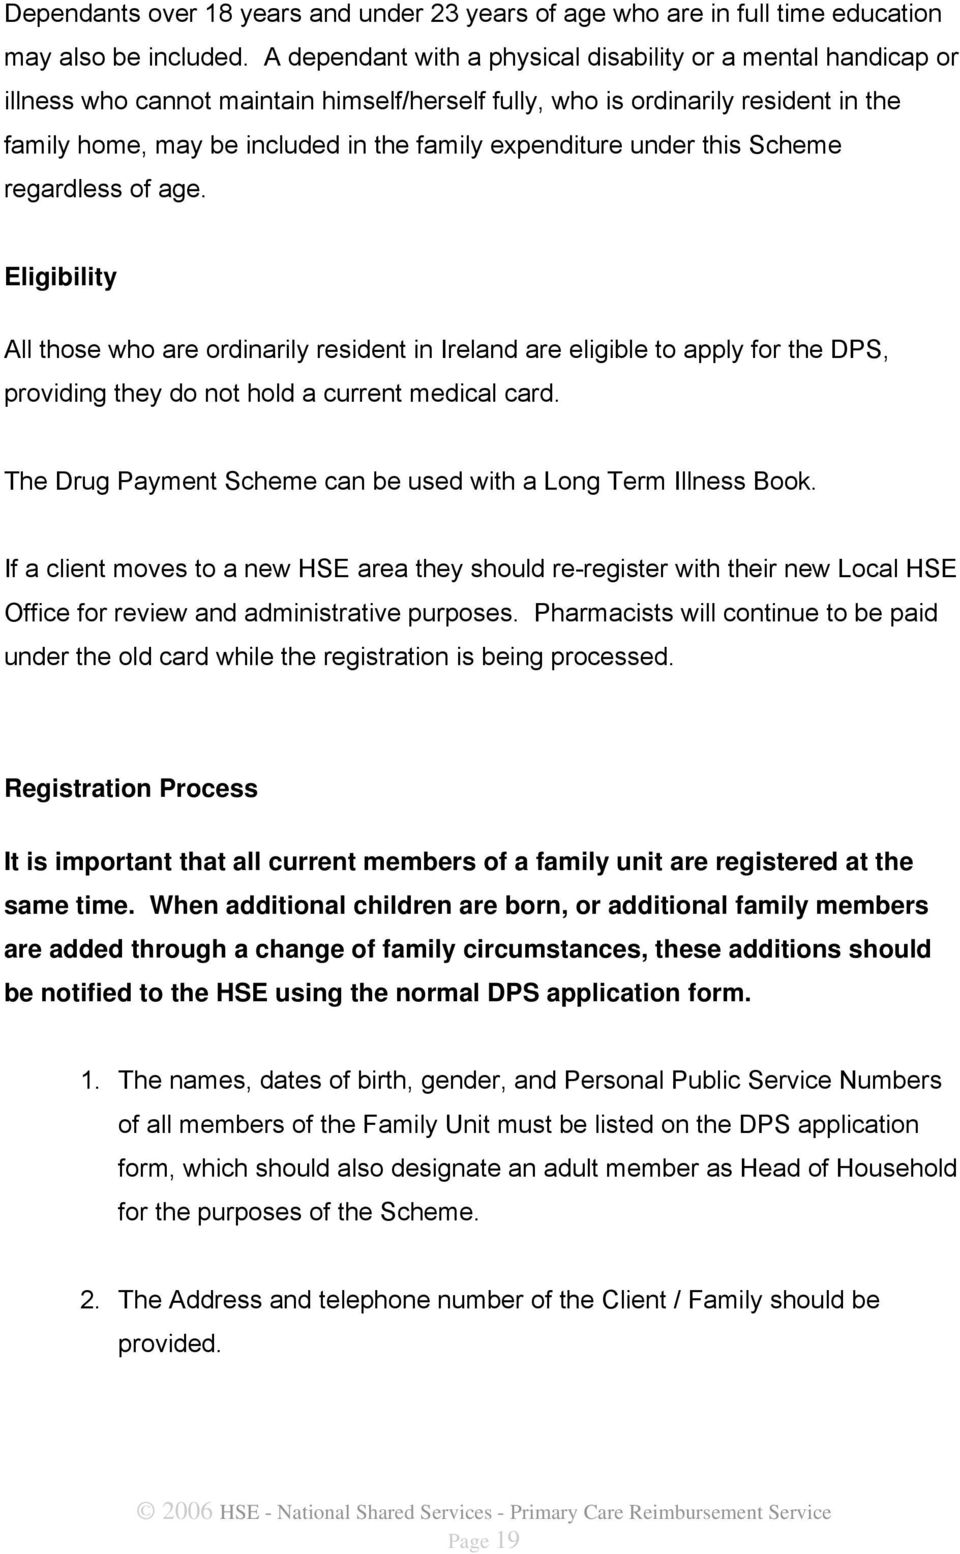 expenditure under this Scheme regardless of age. Eligibility All those who are ordinarily resident in Ireland are eligible to apply for the DPS, providing they do not hold a current medical card.